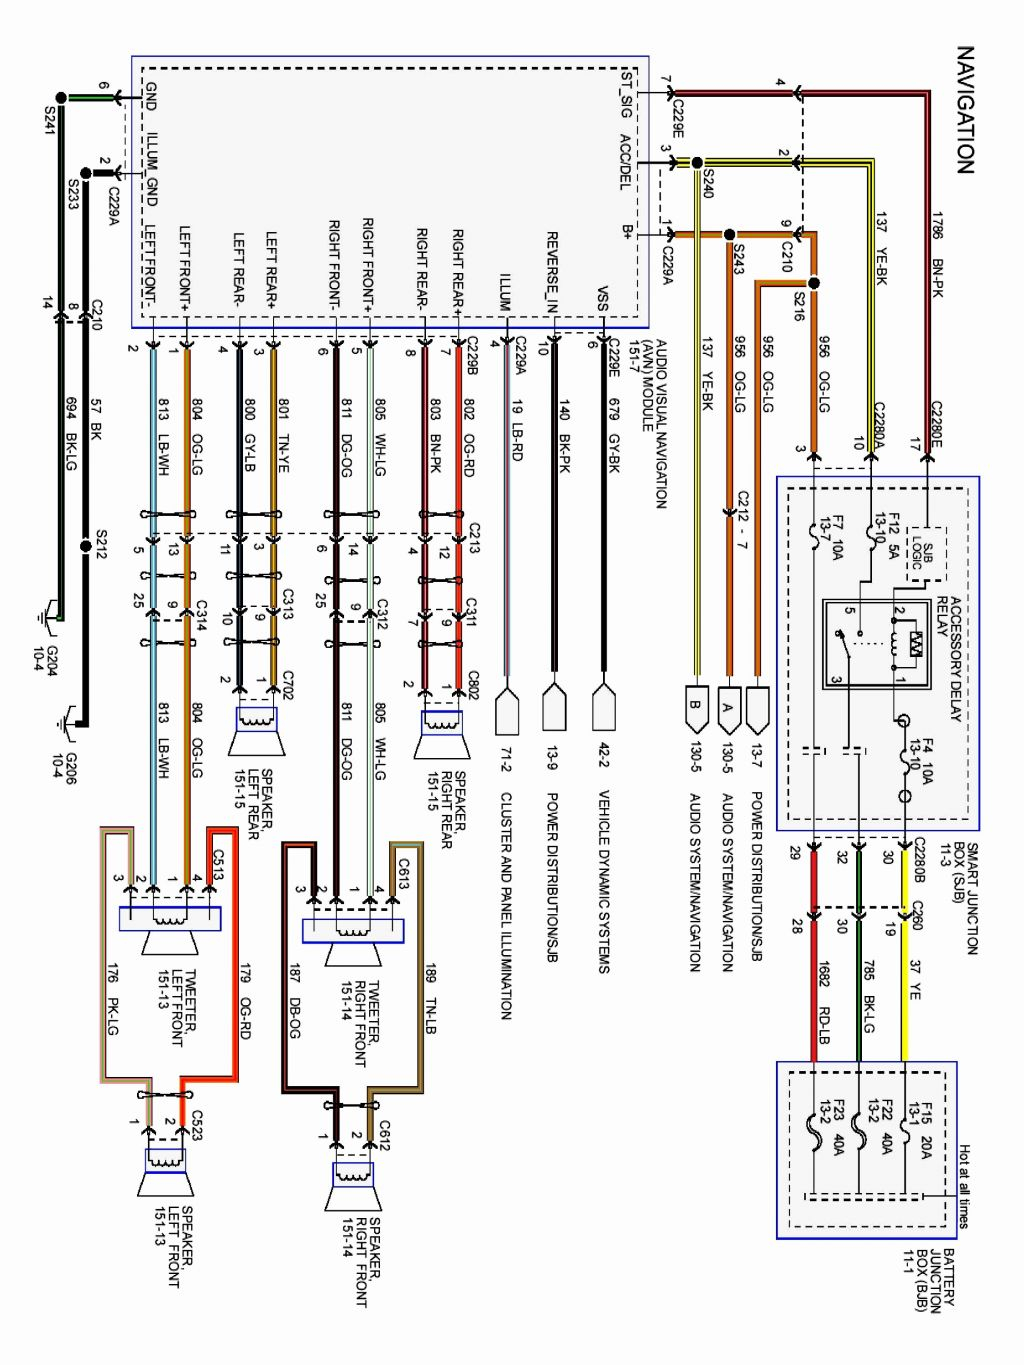 2003 ford escape radio wiring diagram Collection-2003 Ford Explorer Radio  Wiring Diagram Awesome 2006